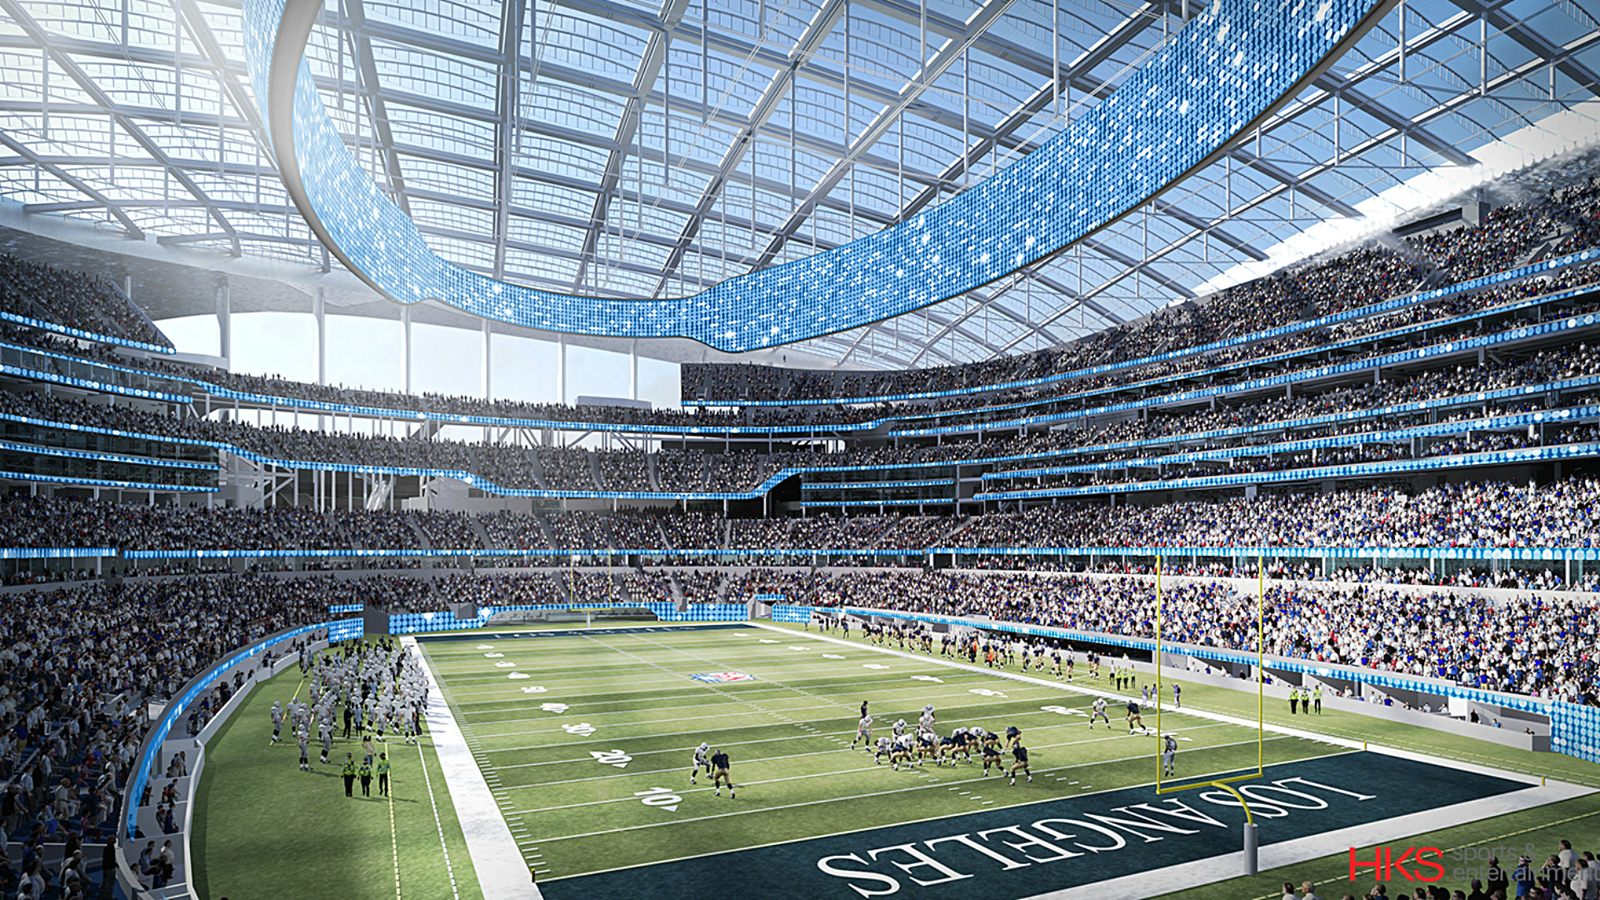 Design Hollywood Park Stadium Stadiumdb Com